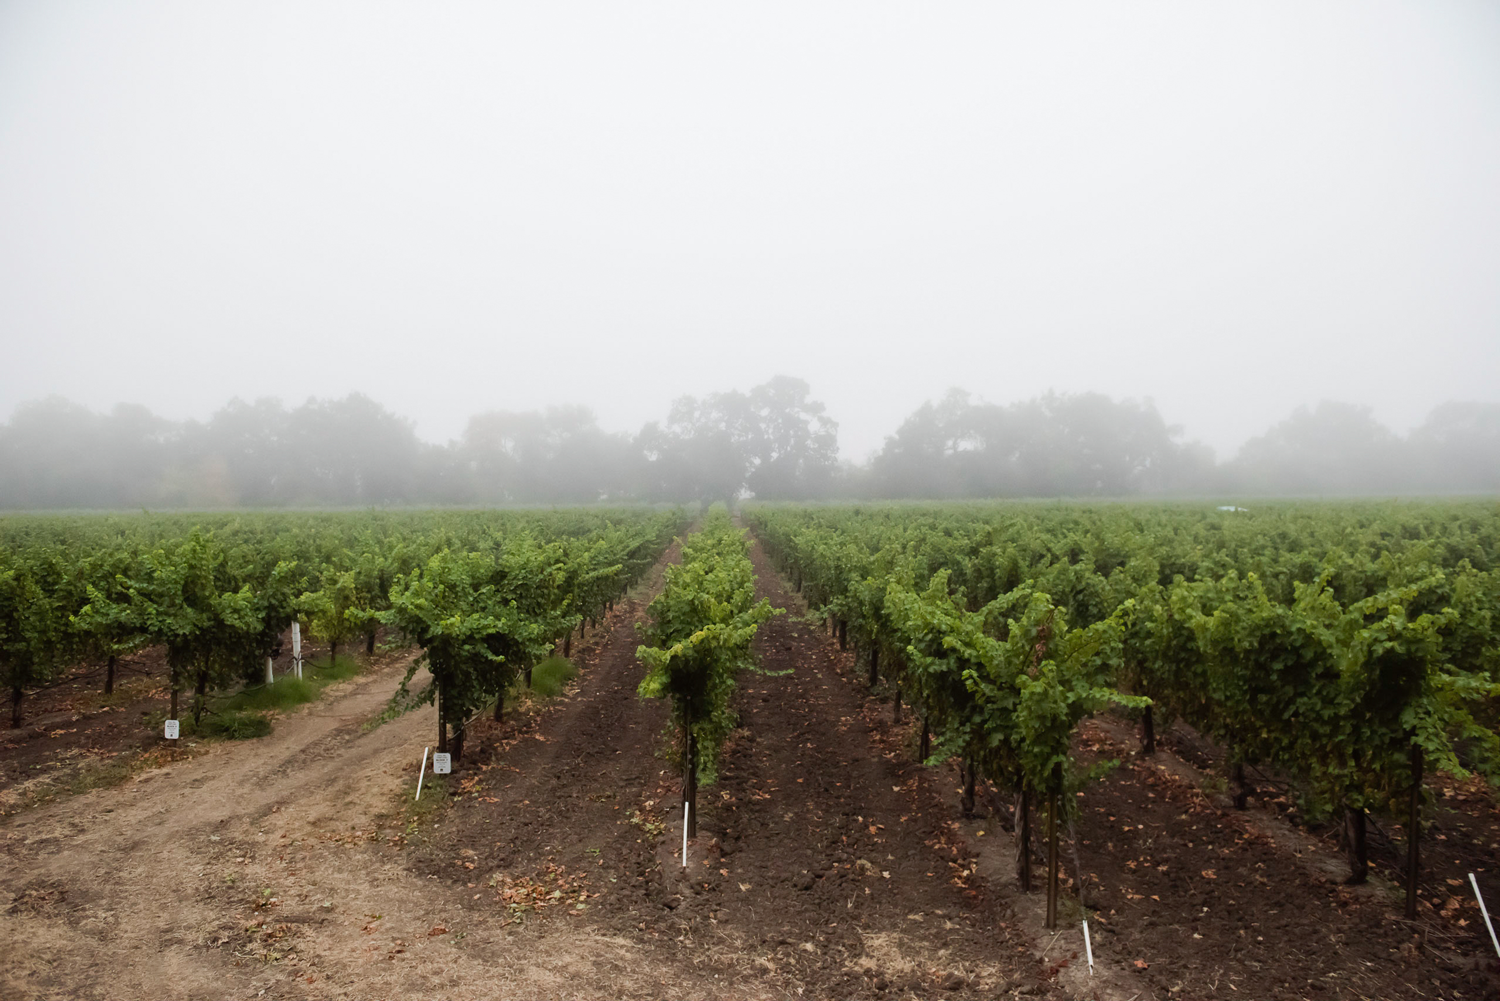 Fog_layer_covering_Hall_and_Piner_vineyards.png